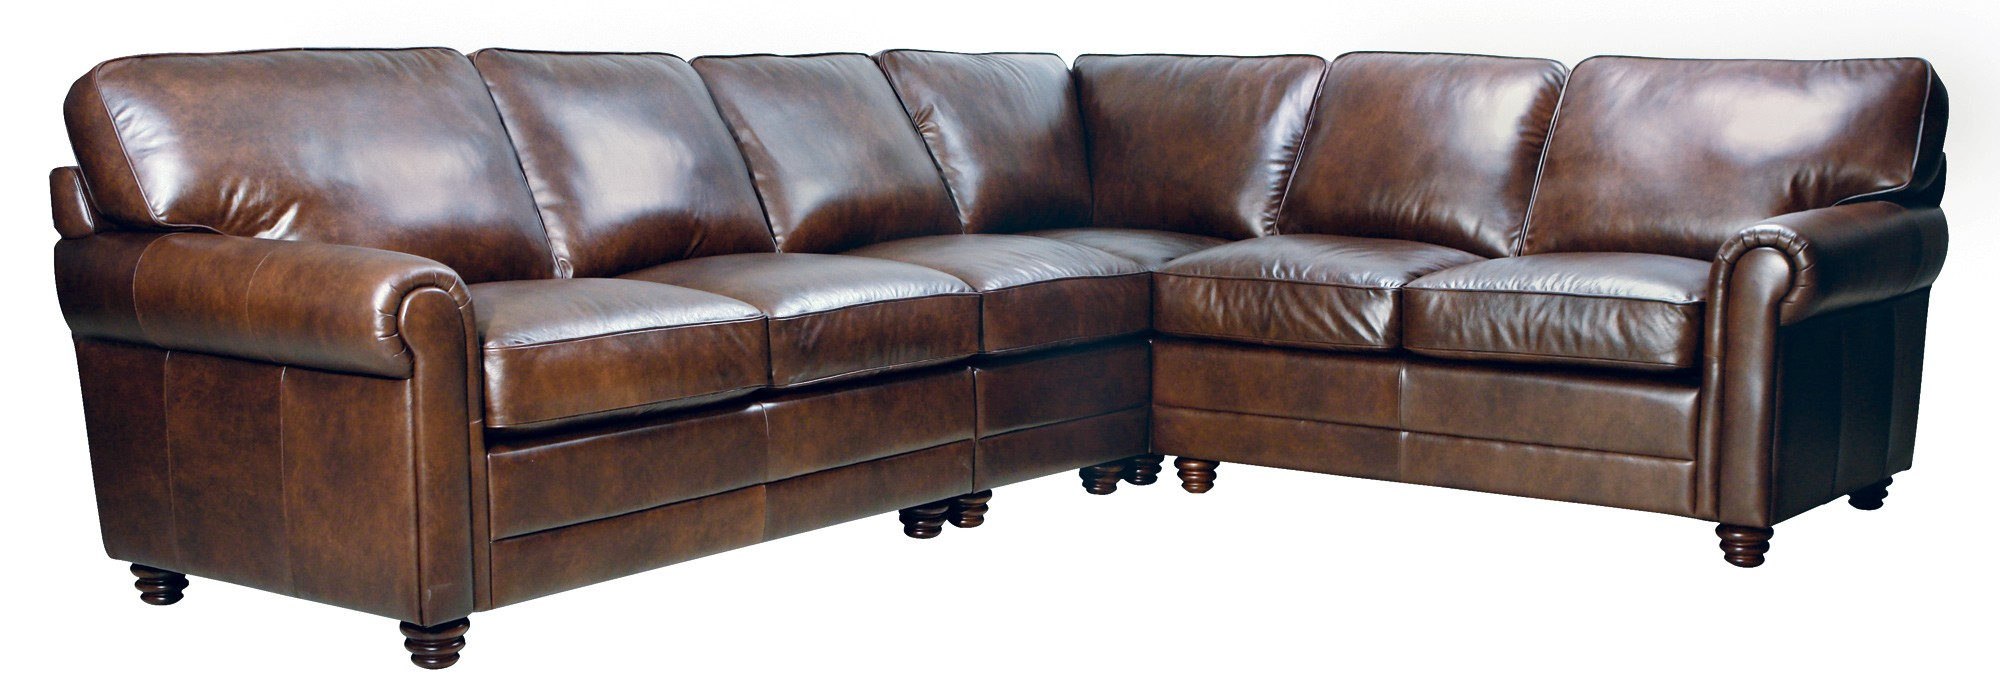 Stupendous Andrew Sectional Luke Leather Furniture Andrewgaddart Wooden Chair Designs For Living Room Andrewgaddartcom